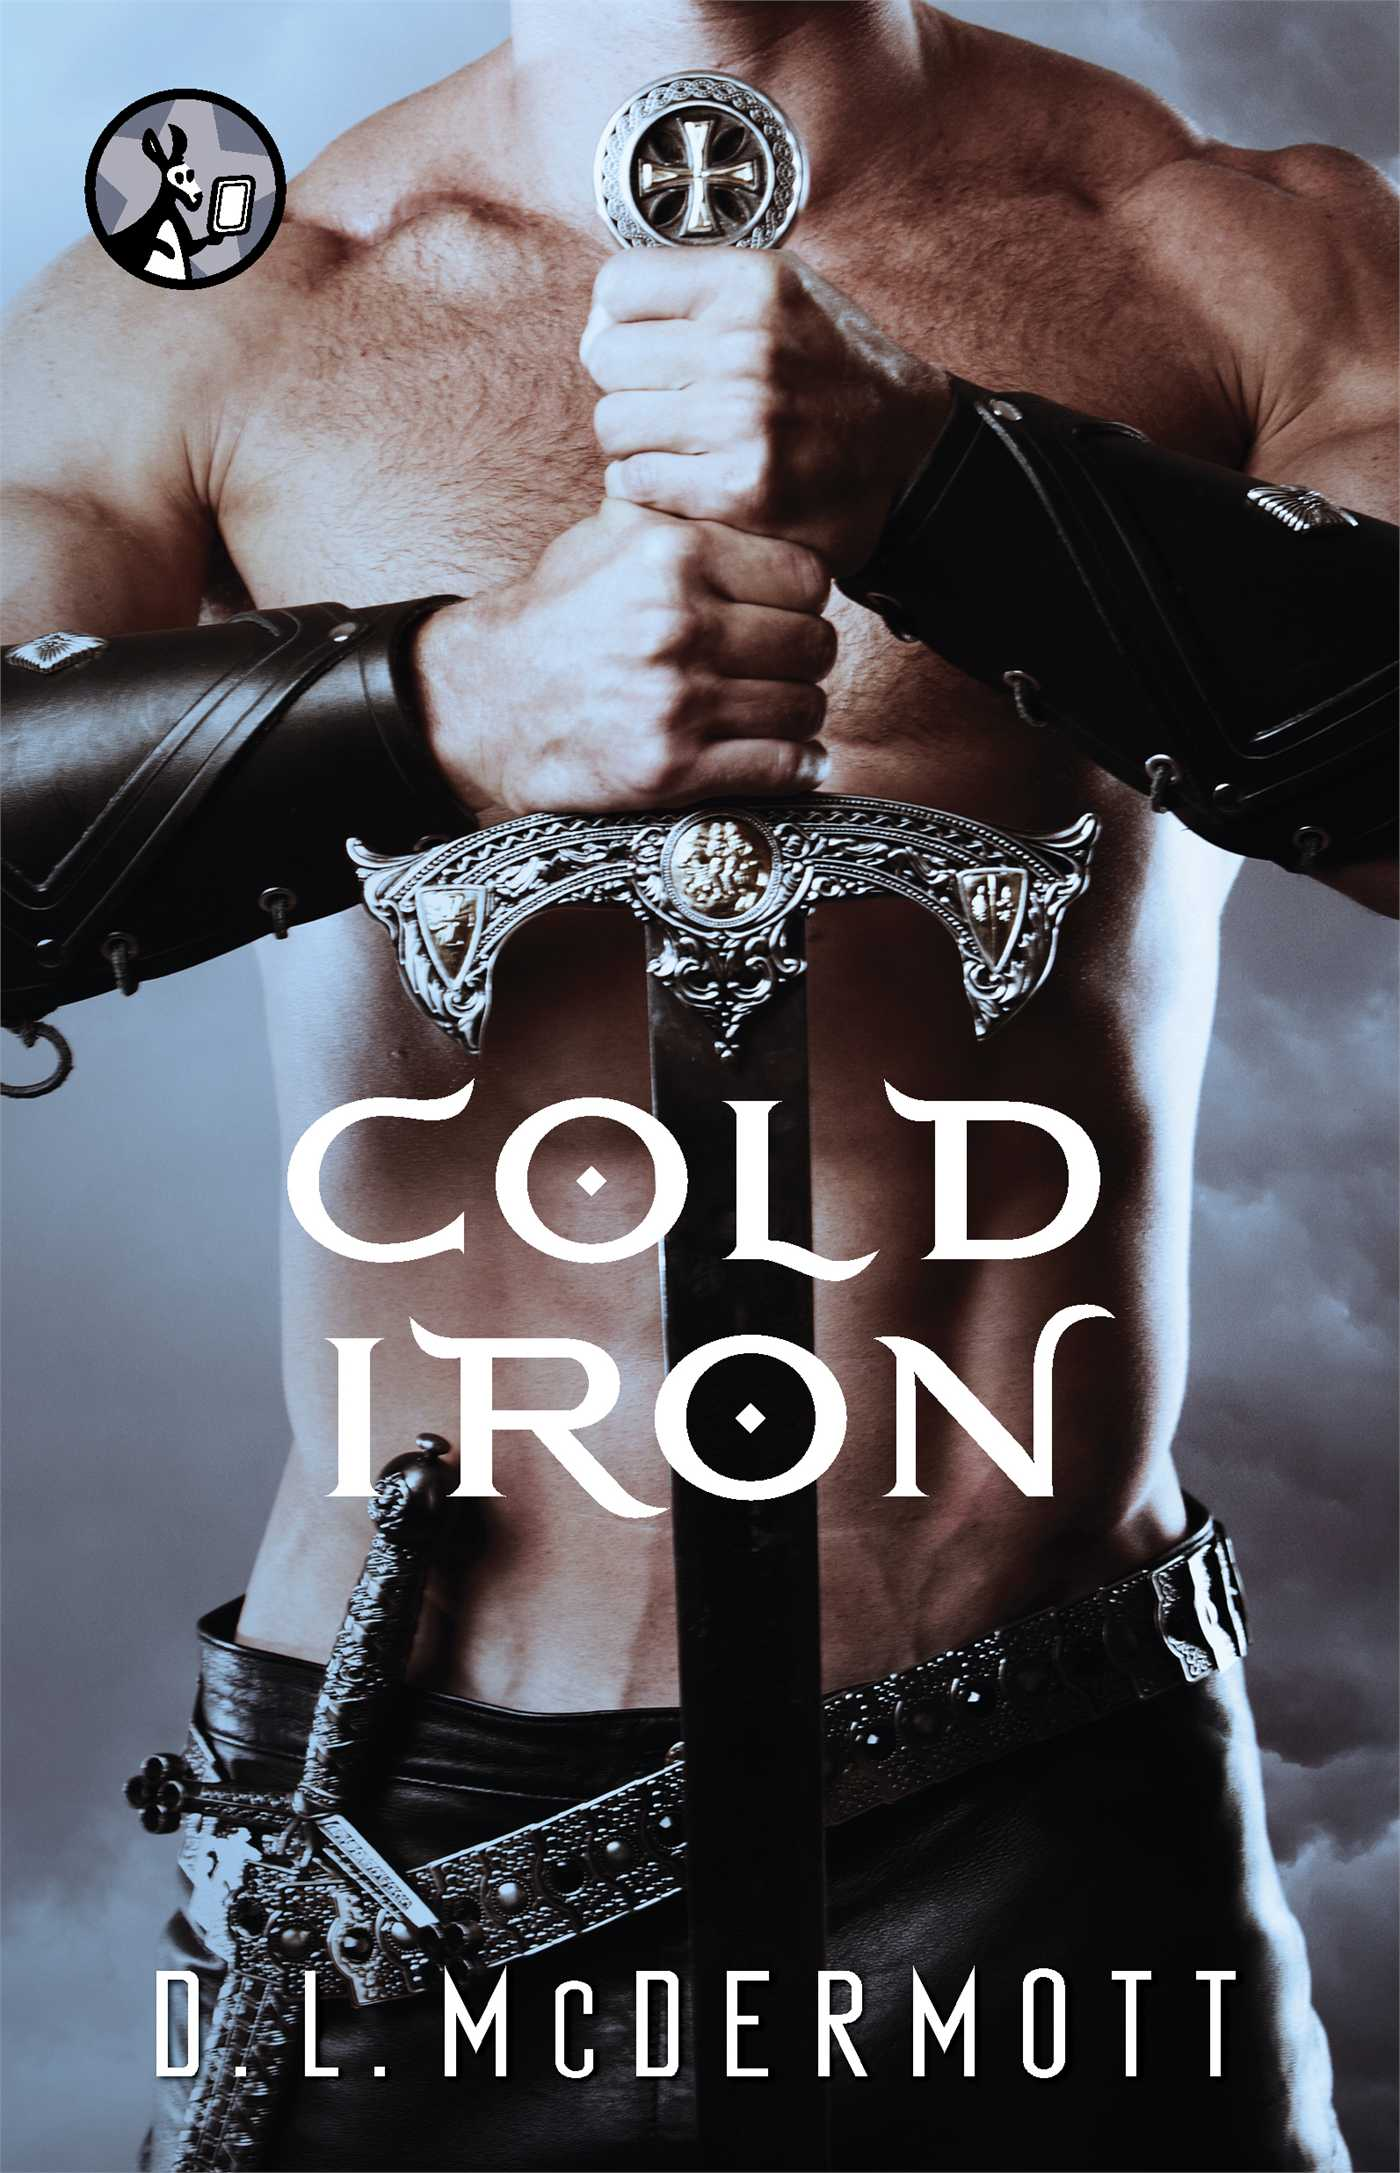 Cold-iron-9781476734392_hr